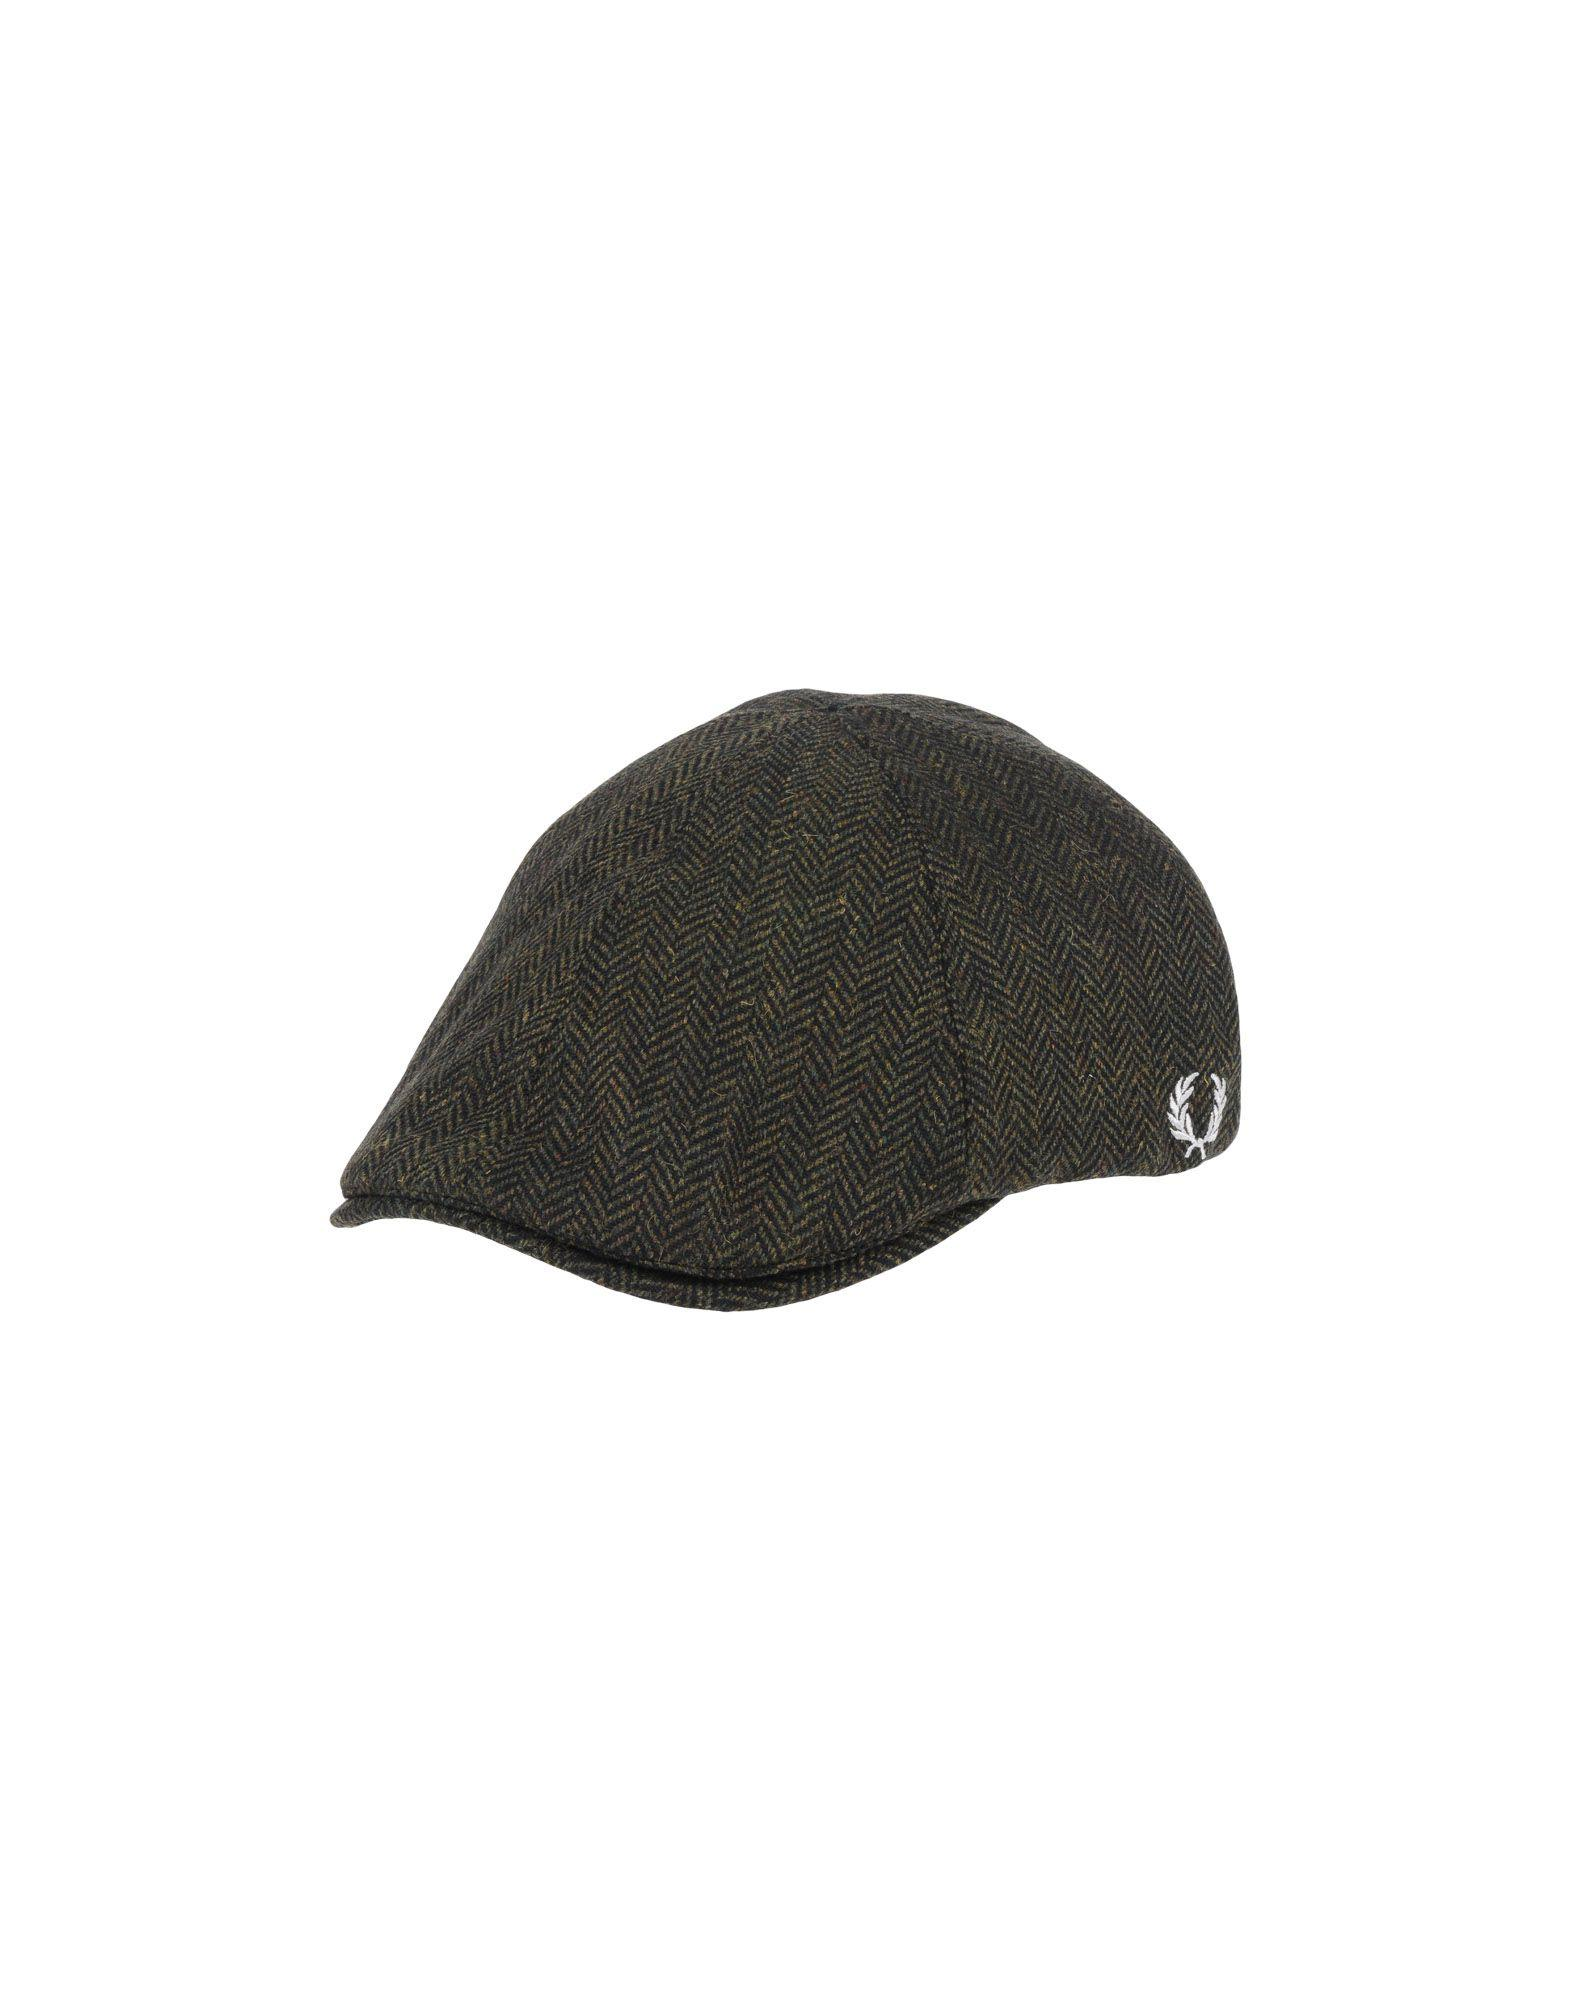 Fred Perry Hats In Dark Green  f6df7c43e5f